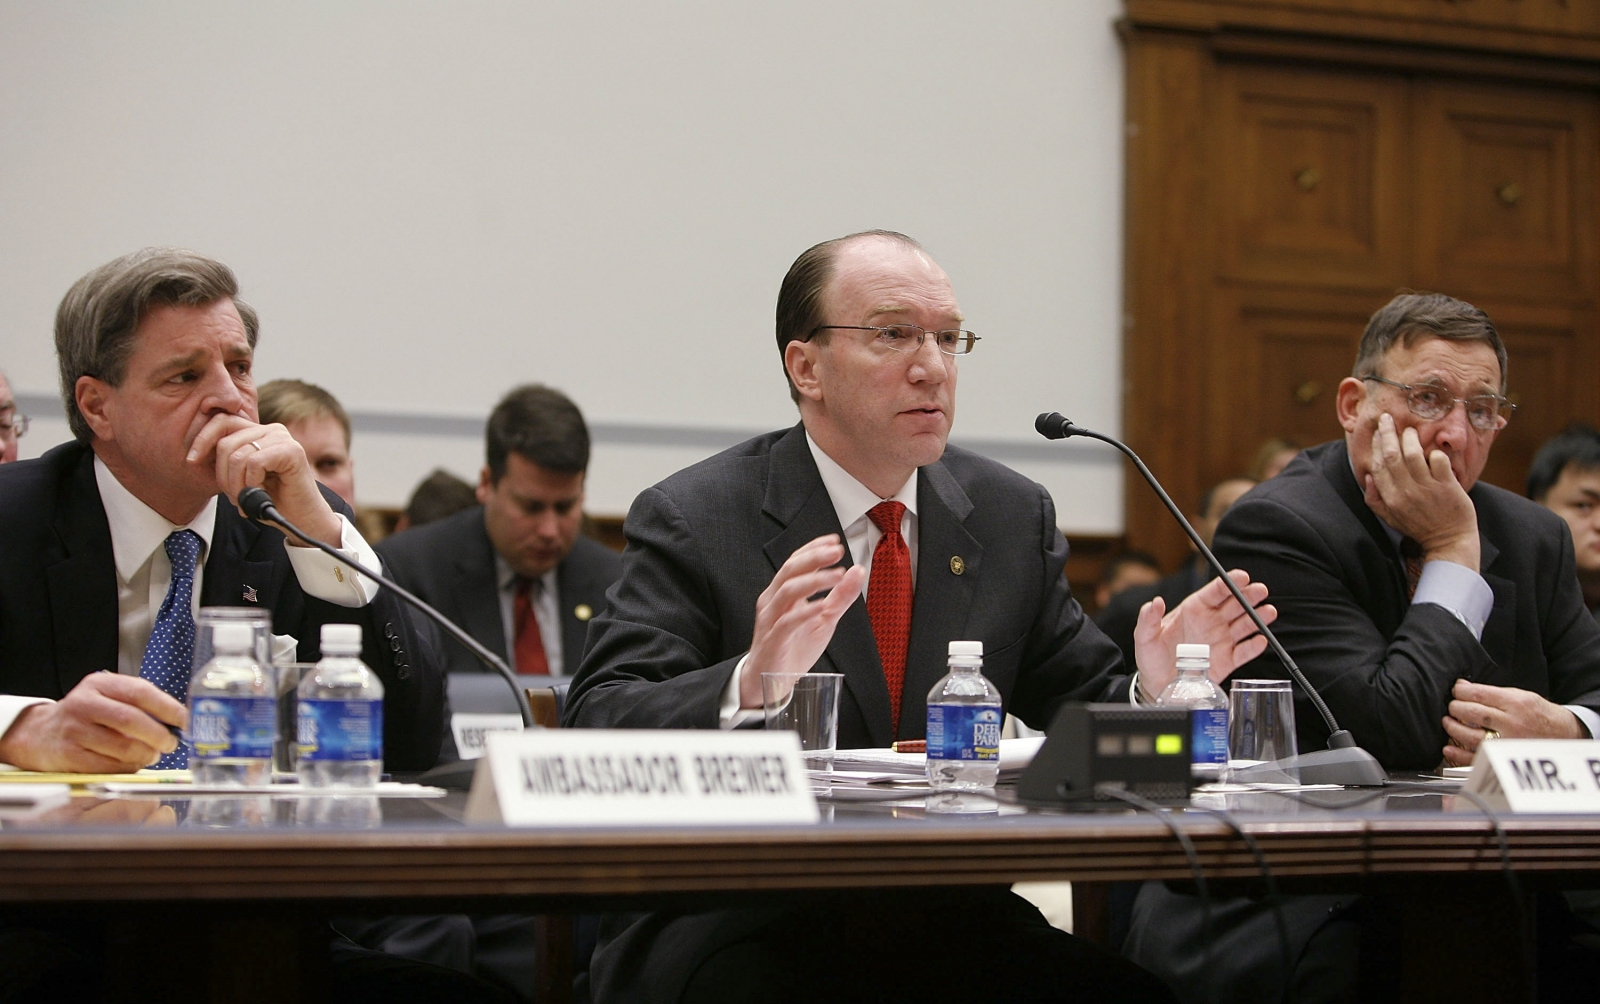 Stuart W Bowen testifies at the US Congress. To his right, is Paul Bremer, former head of the Coalition Provisional Authority. (Getty)